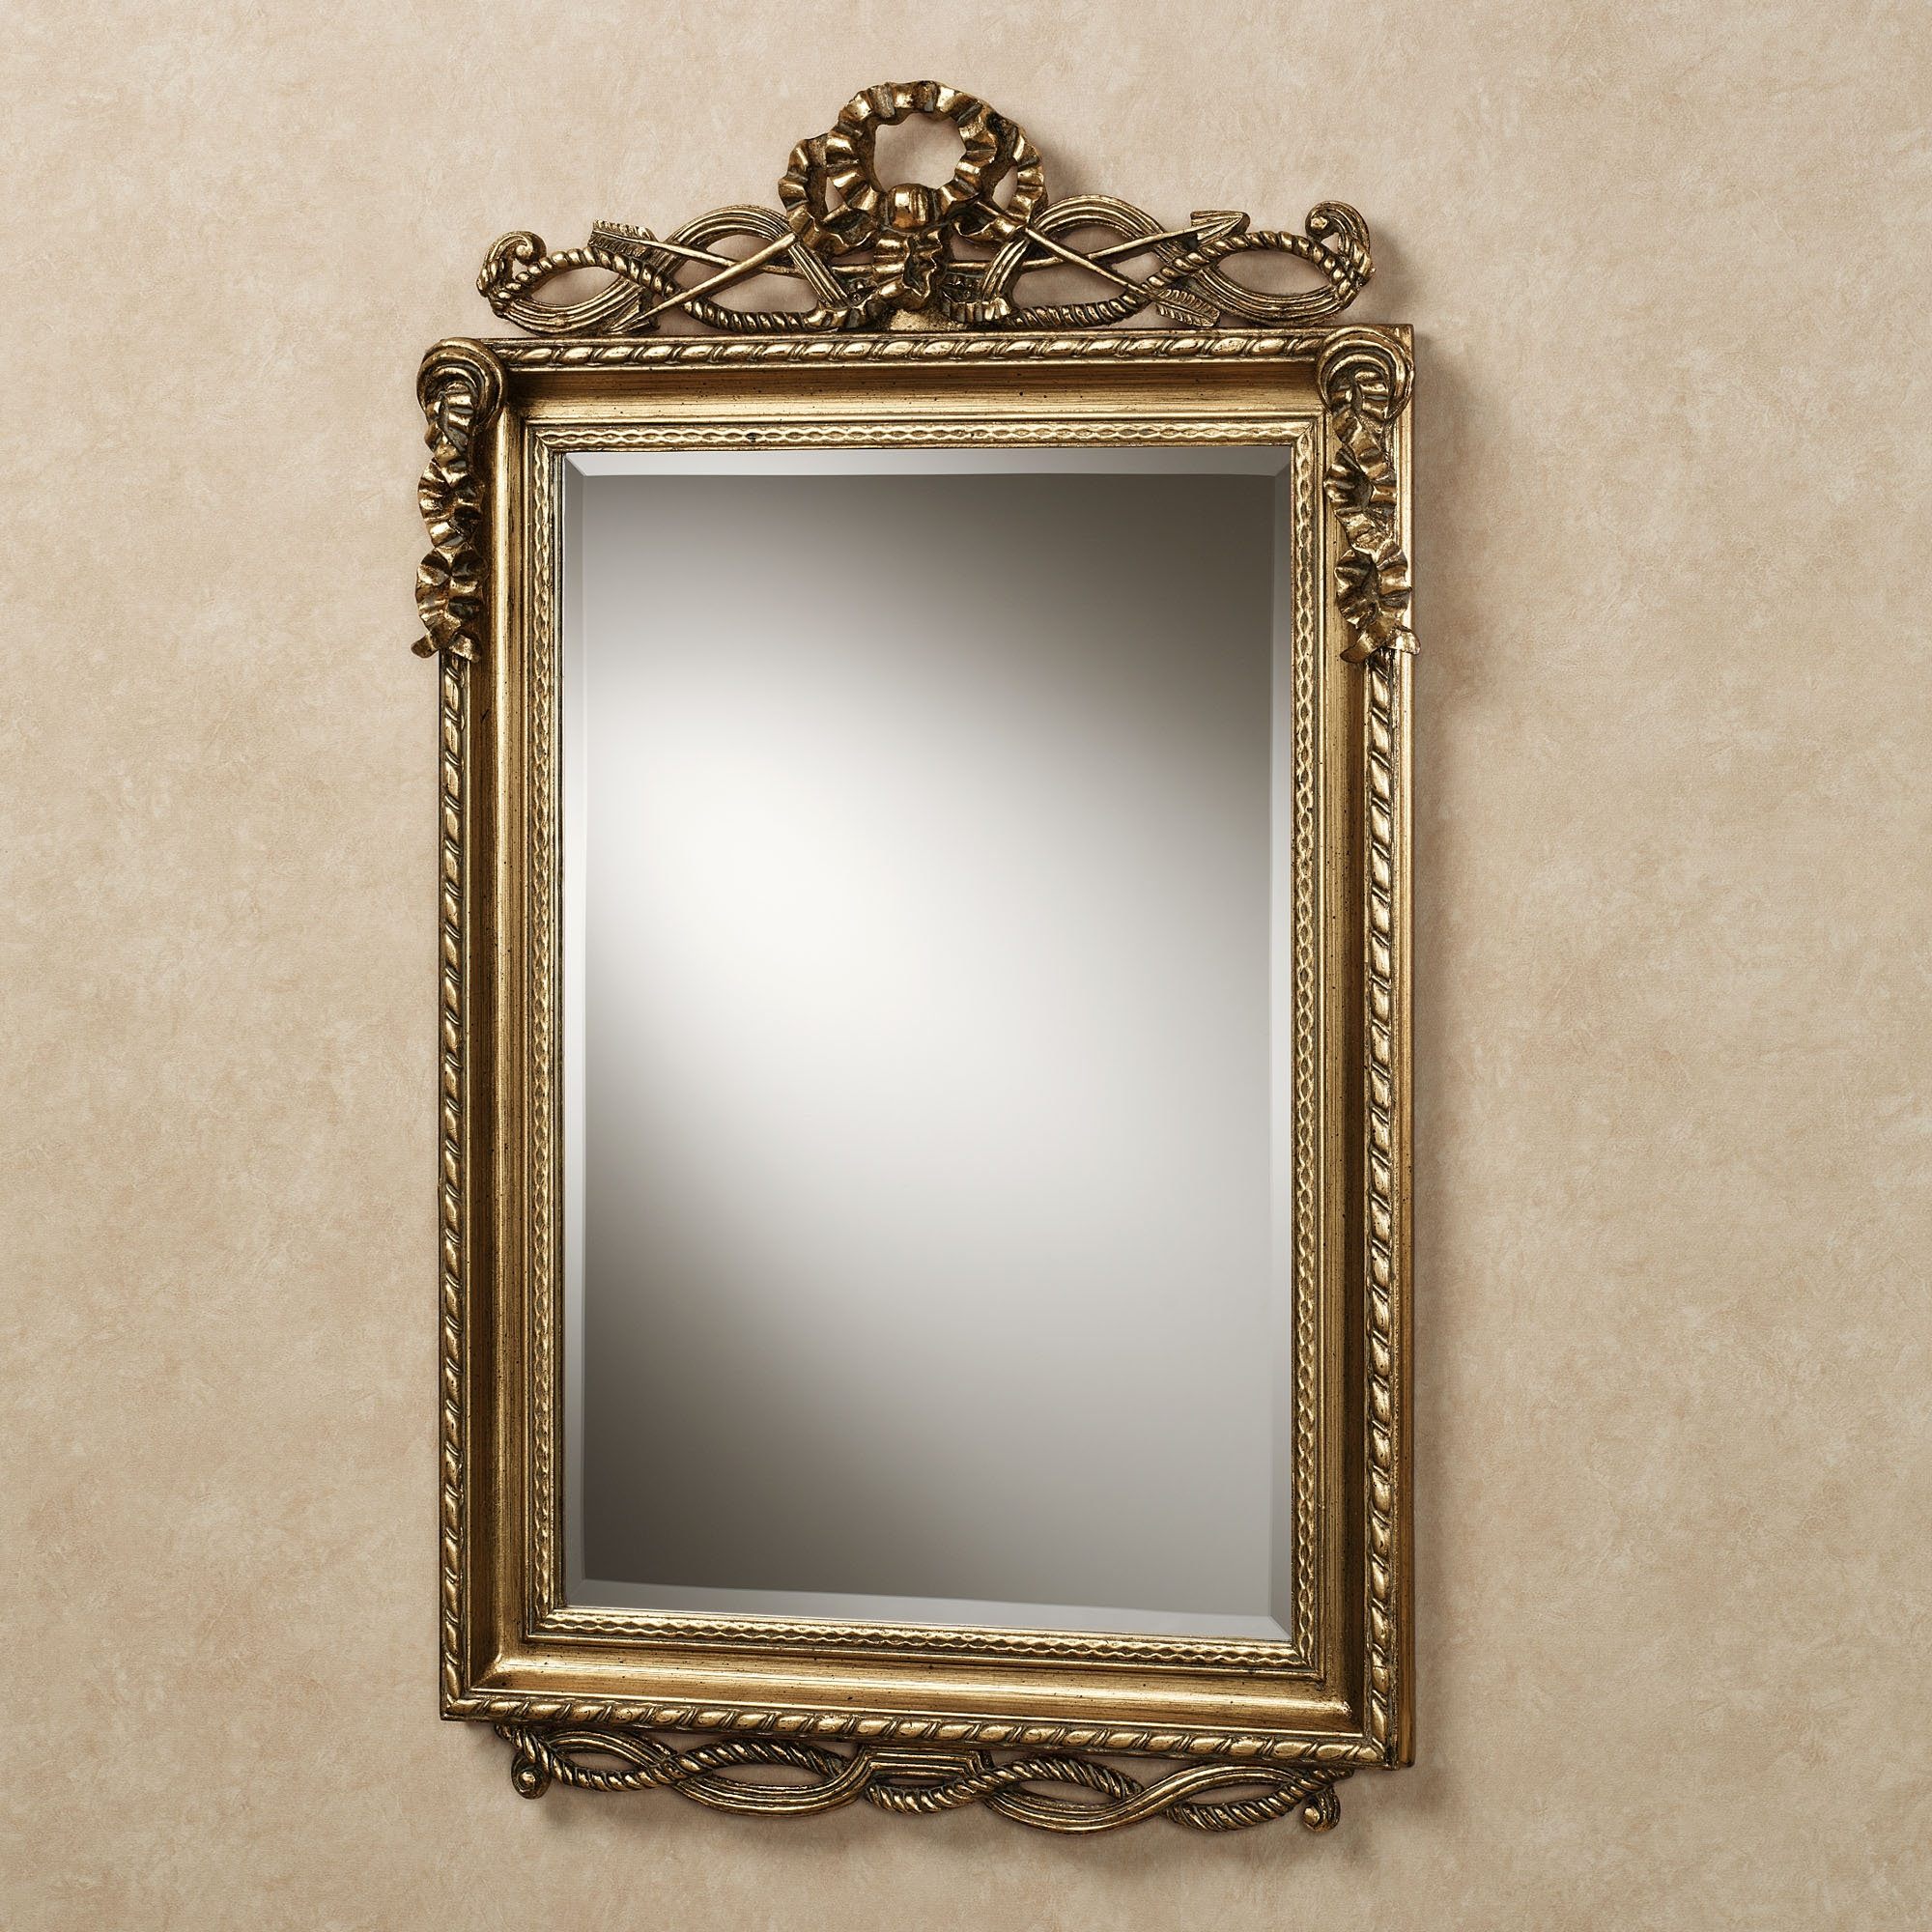 15 Photos Vintage Wall Mirrors For Sale Mirror Ideas